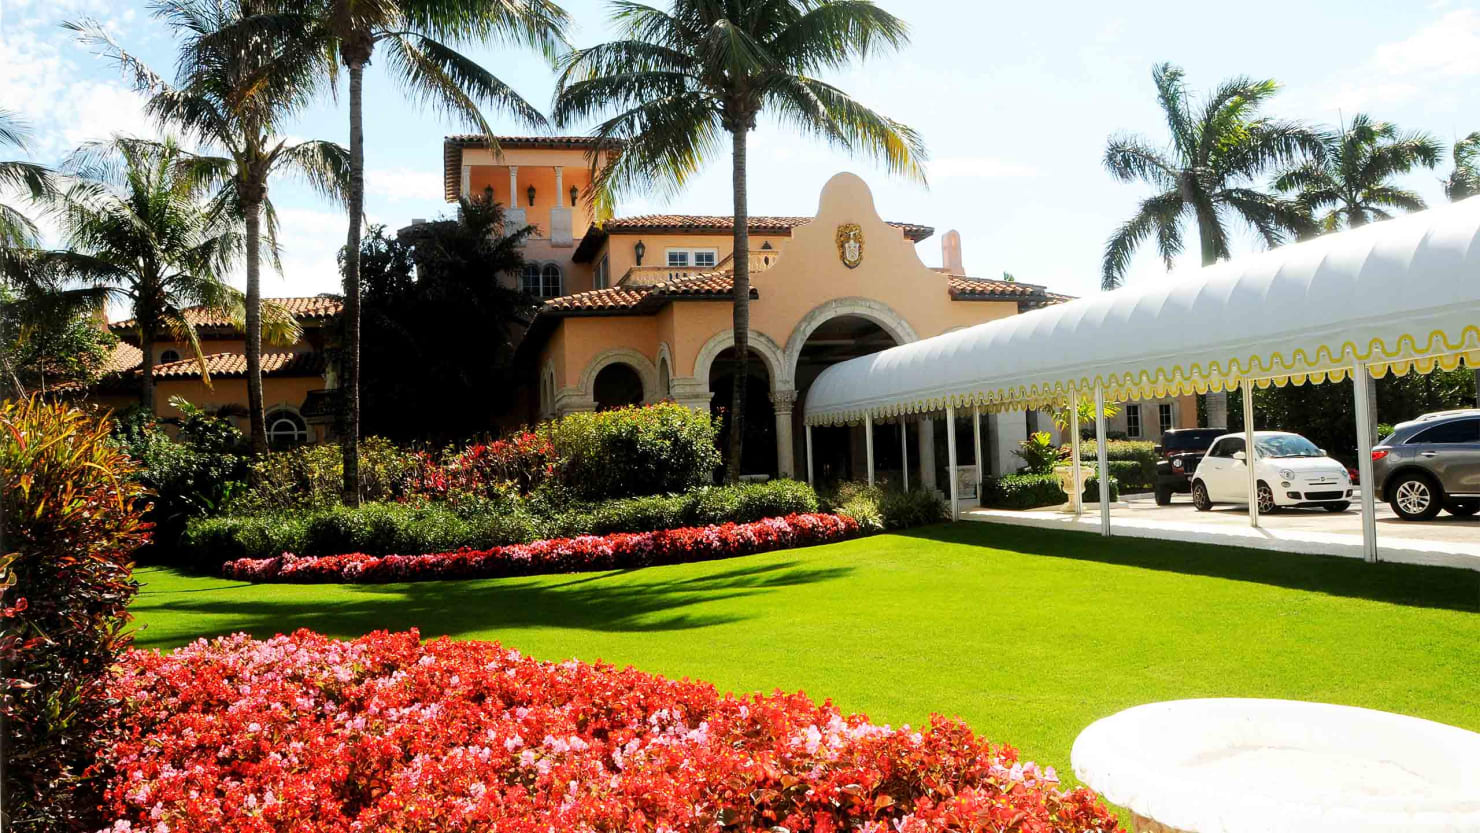 The State Department Accidentally Promoted Trump's Mar-a-Lago. Then Chaos Ensued.